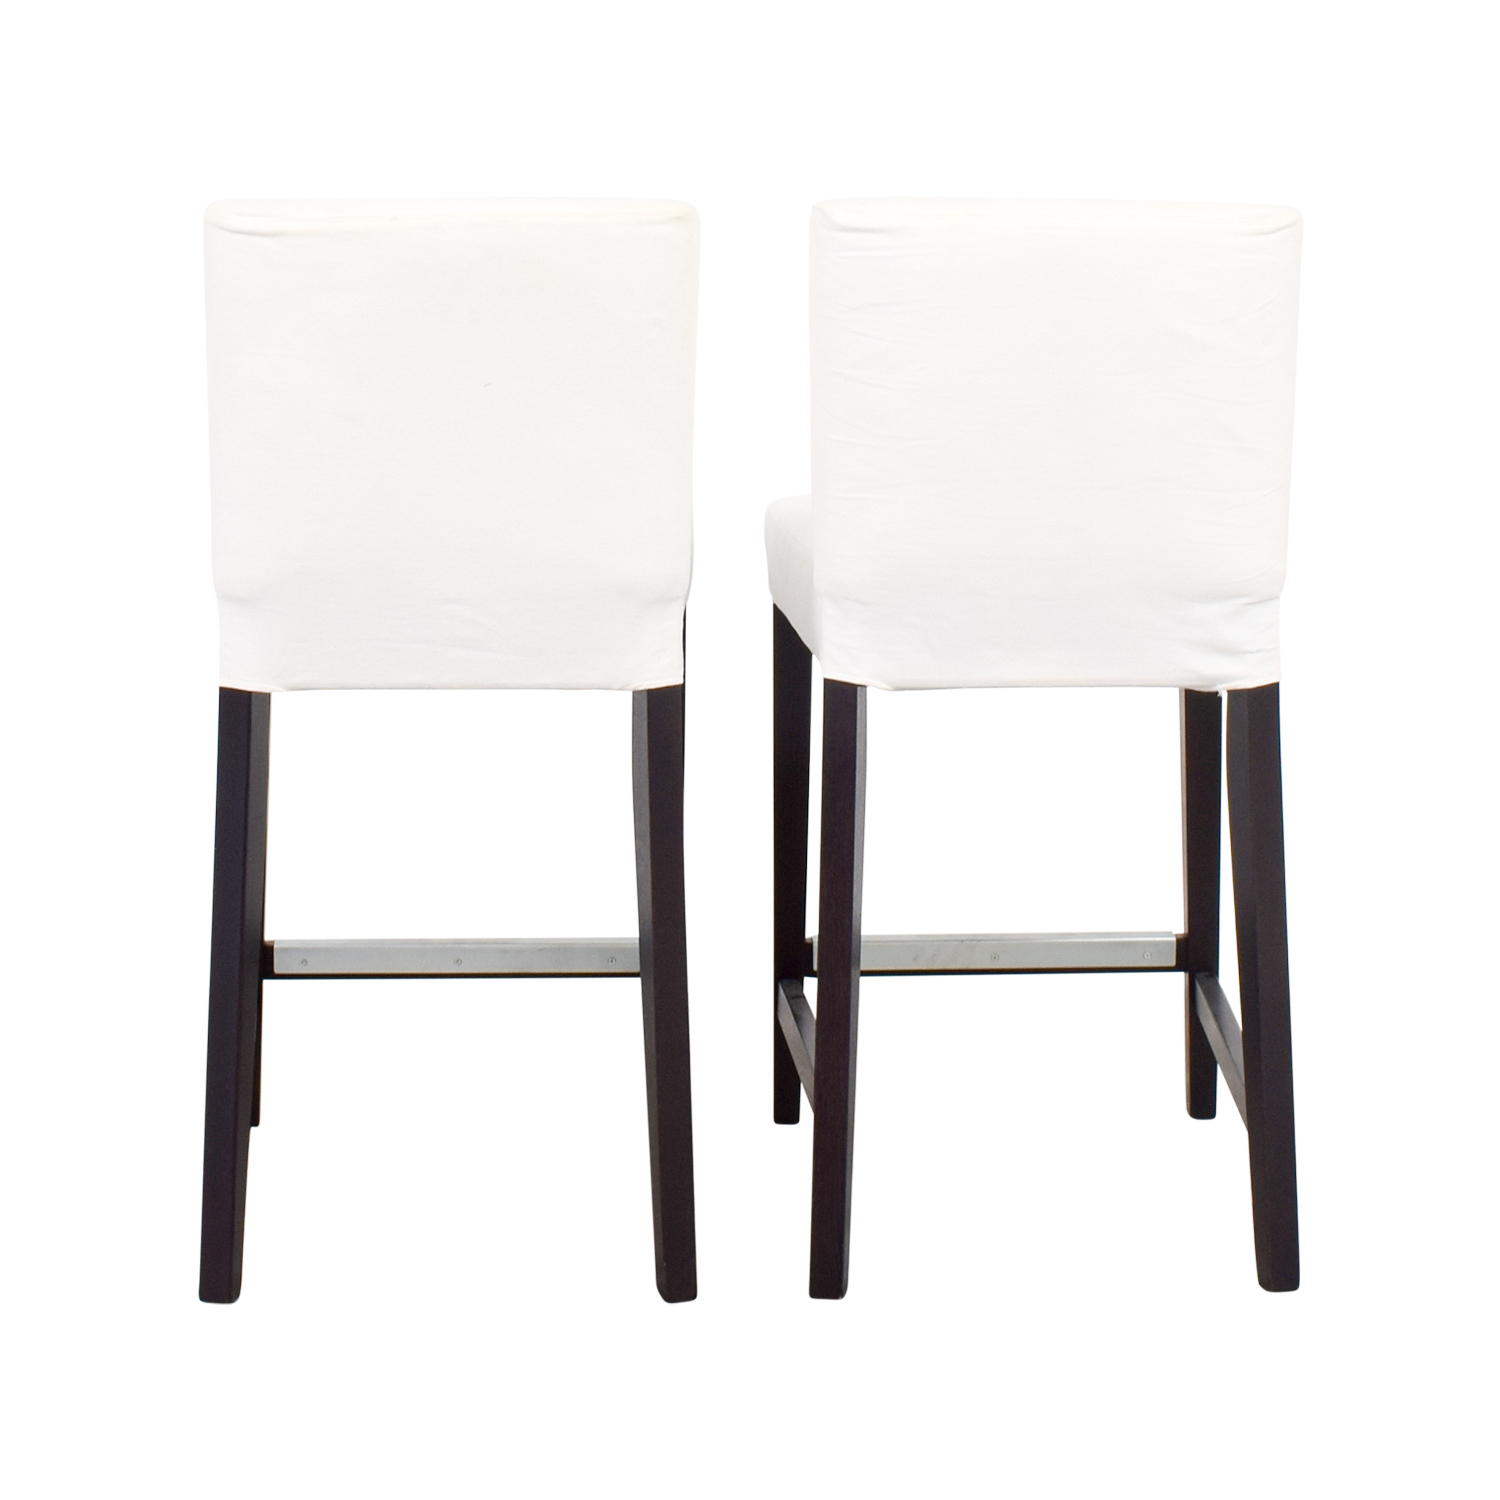 ... IKEA IKEA HENRIKSDAL White Covered Bar Stools for sale ...  sc 1 st  Furnishare & 69% OFF - IKEA IKEA HENRIKSDAL White Covered Bar Stools / Chairs islam-shia.org